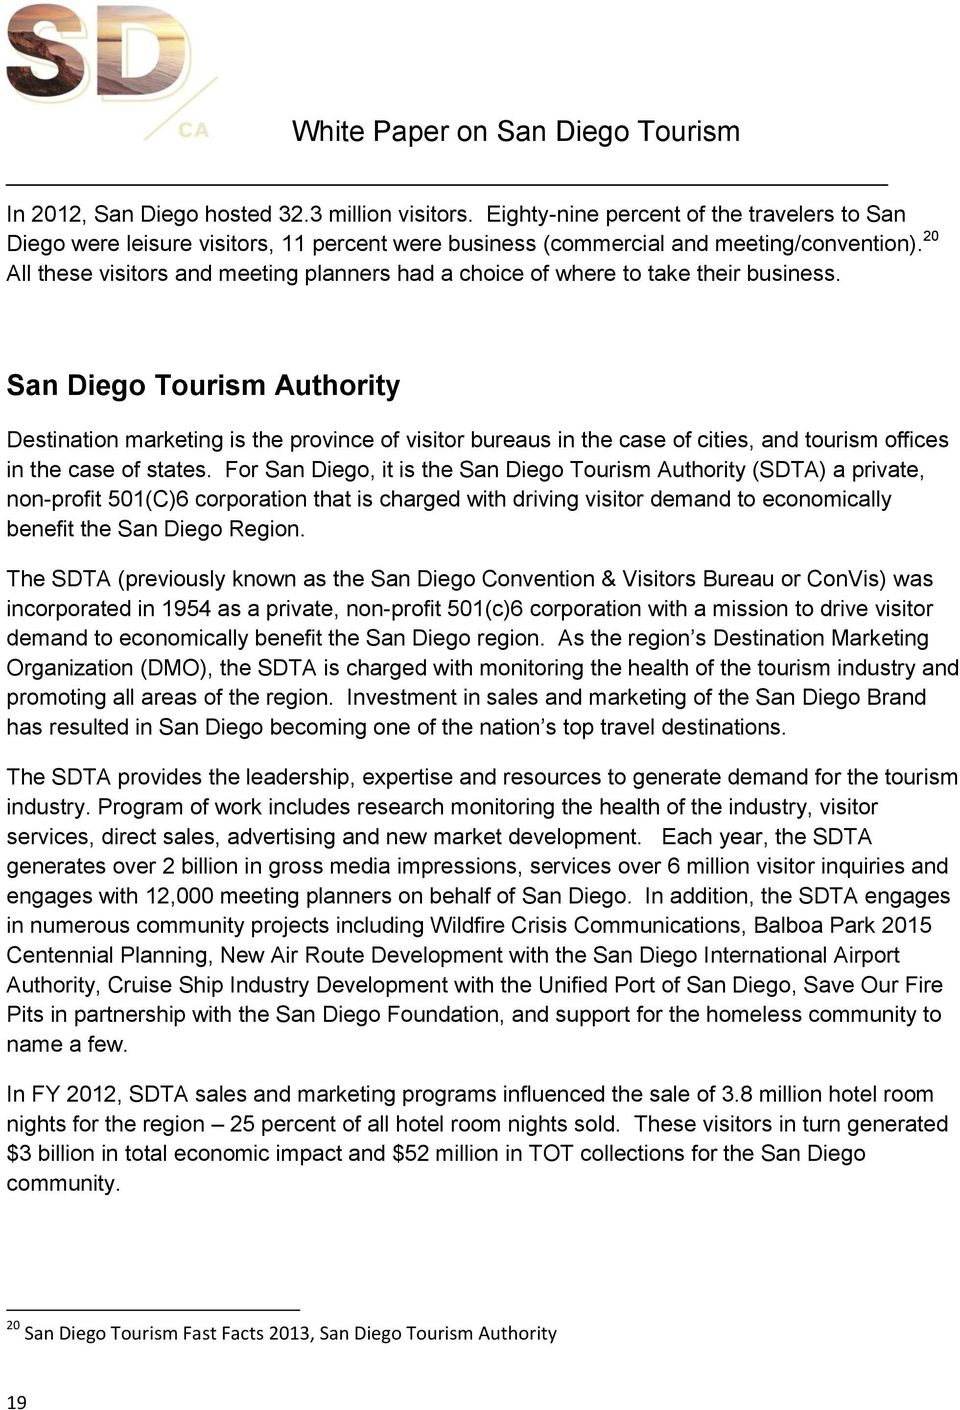 San Diego Tourism Authority Destination marketing is the province of visitor bureaus in the case of cities, and tourism offices in the case of states.